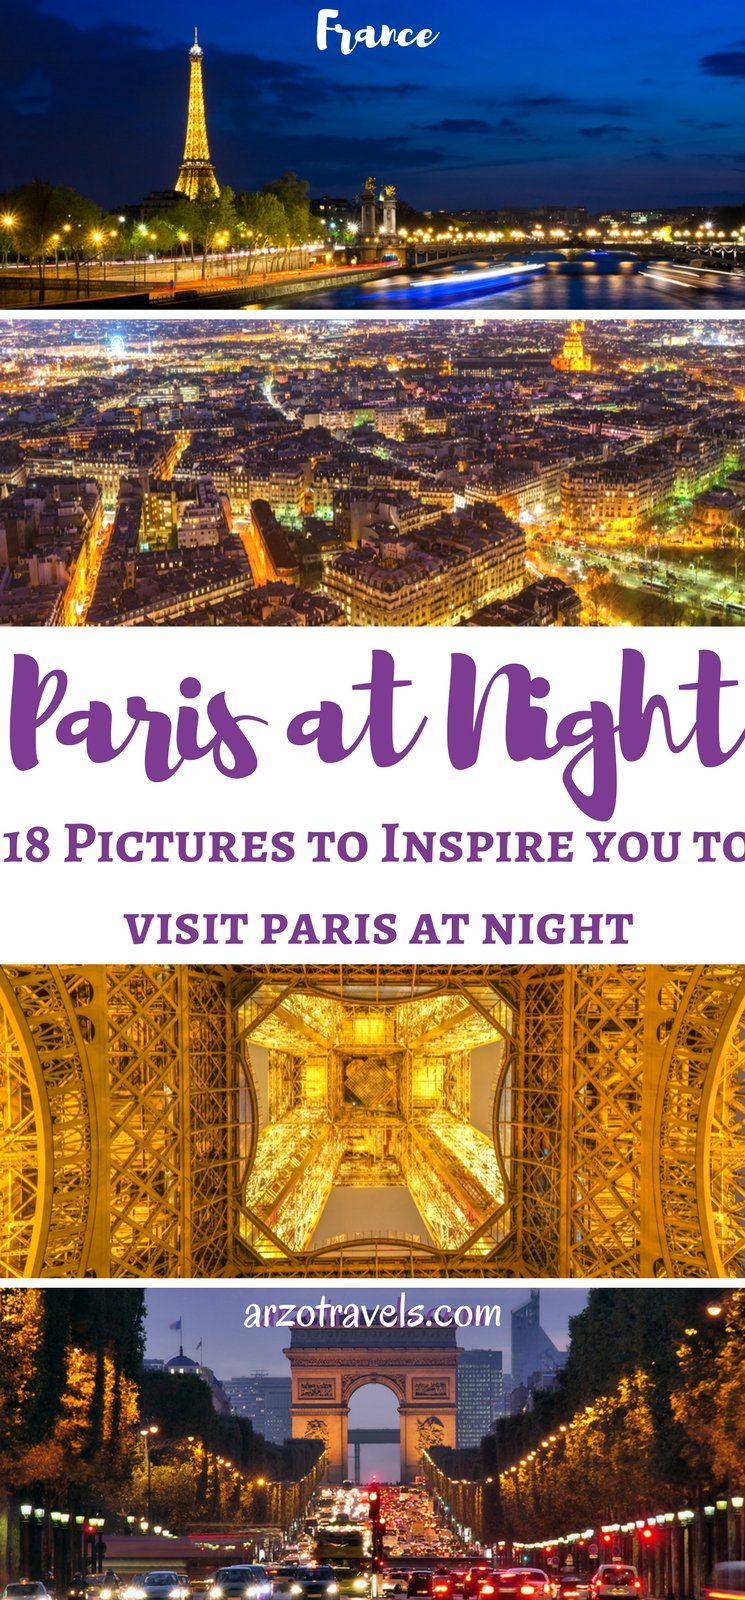 The Most Beautiful City at Night: Paris. Pictures to inspire you to visit Paris at night. @arzotravels